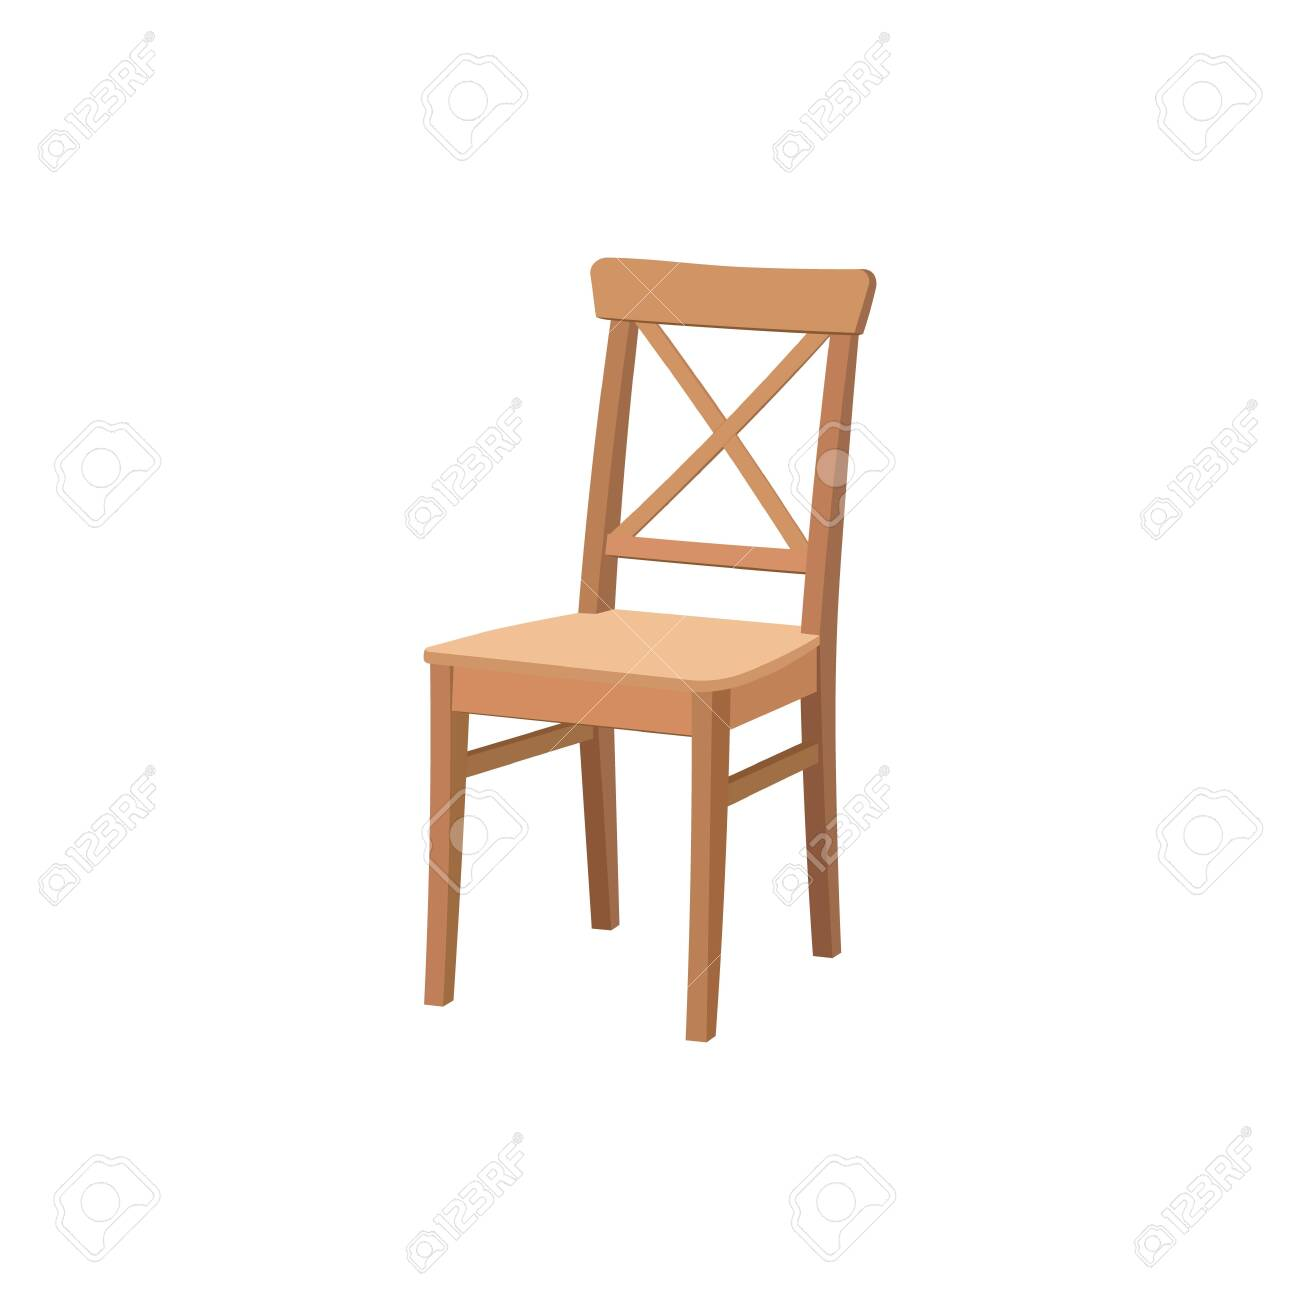 Old wooden chair.Furniture for dining room.